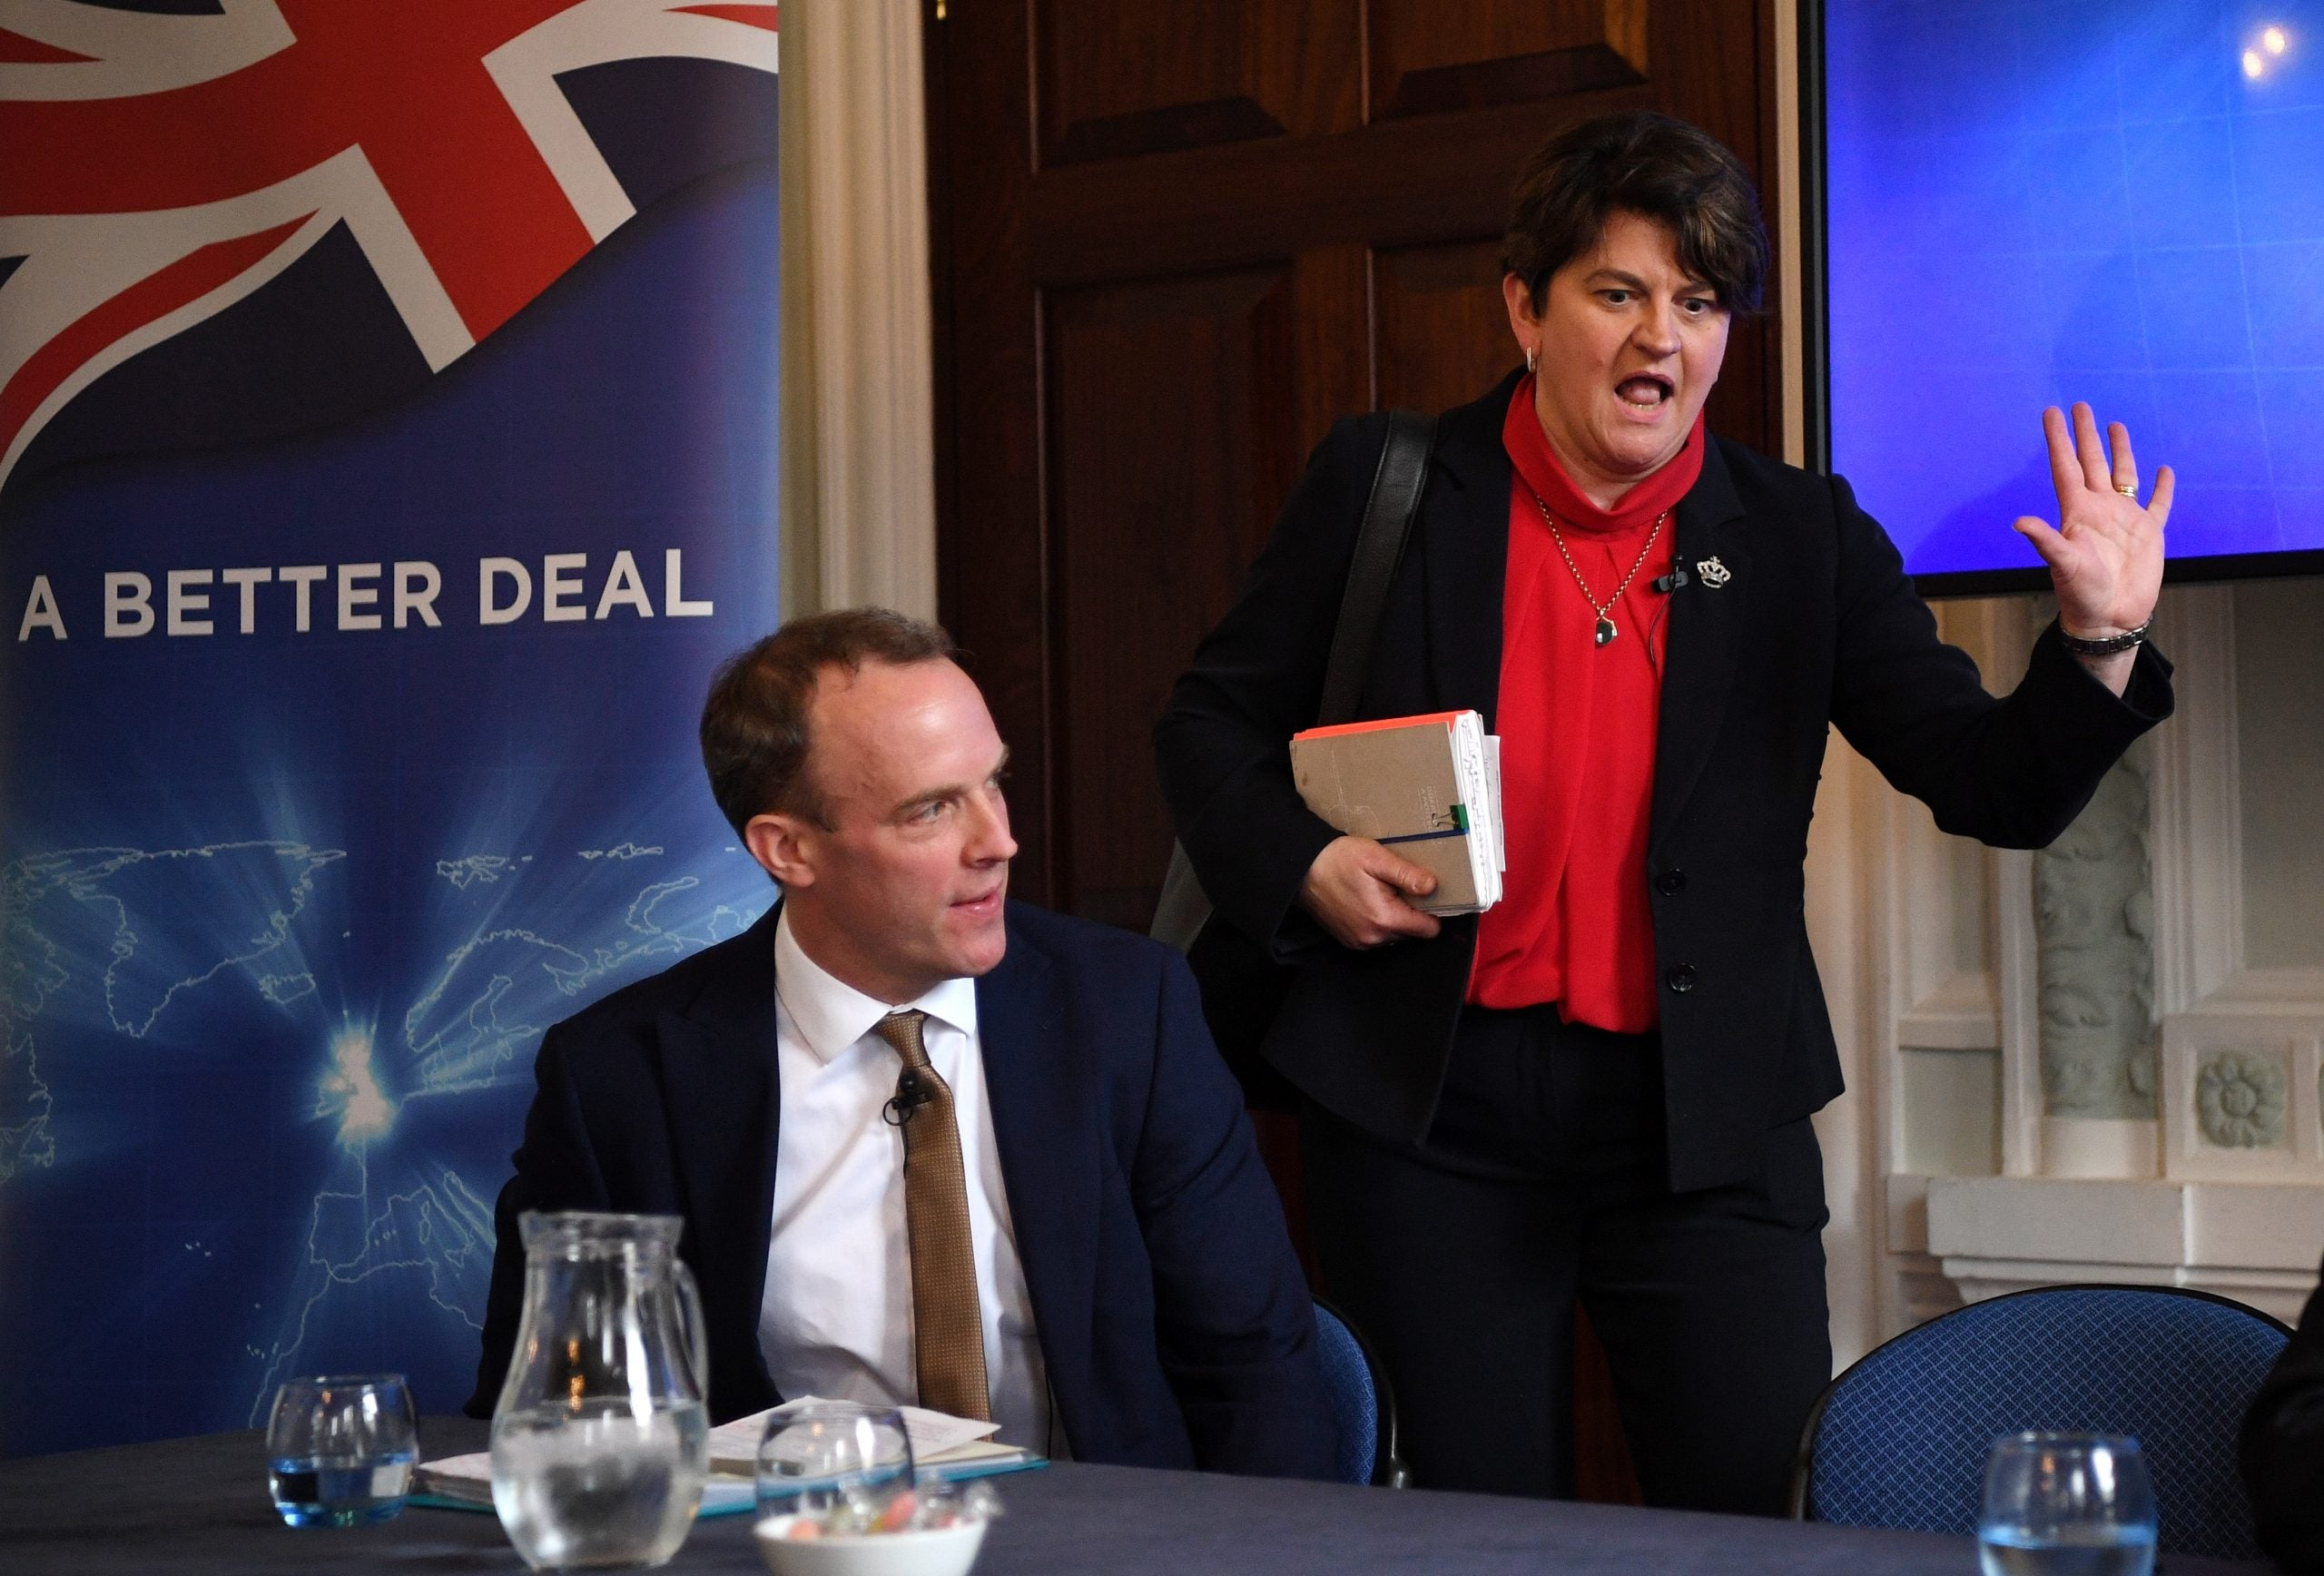 Commons Confidential: Why the DUP's next bung could be £8bn